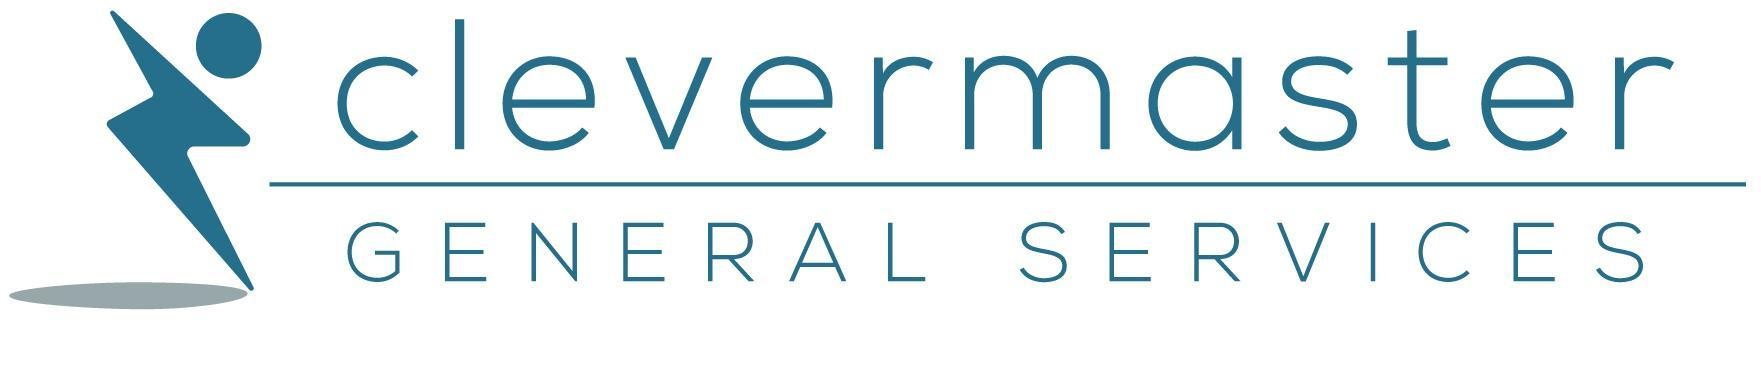 Clevermaster General Services